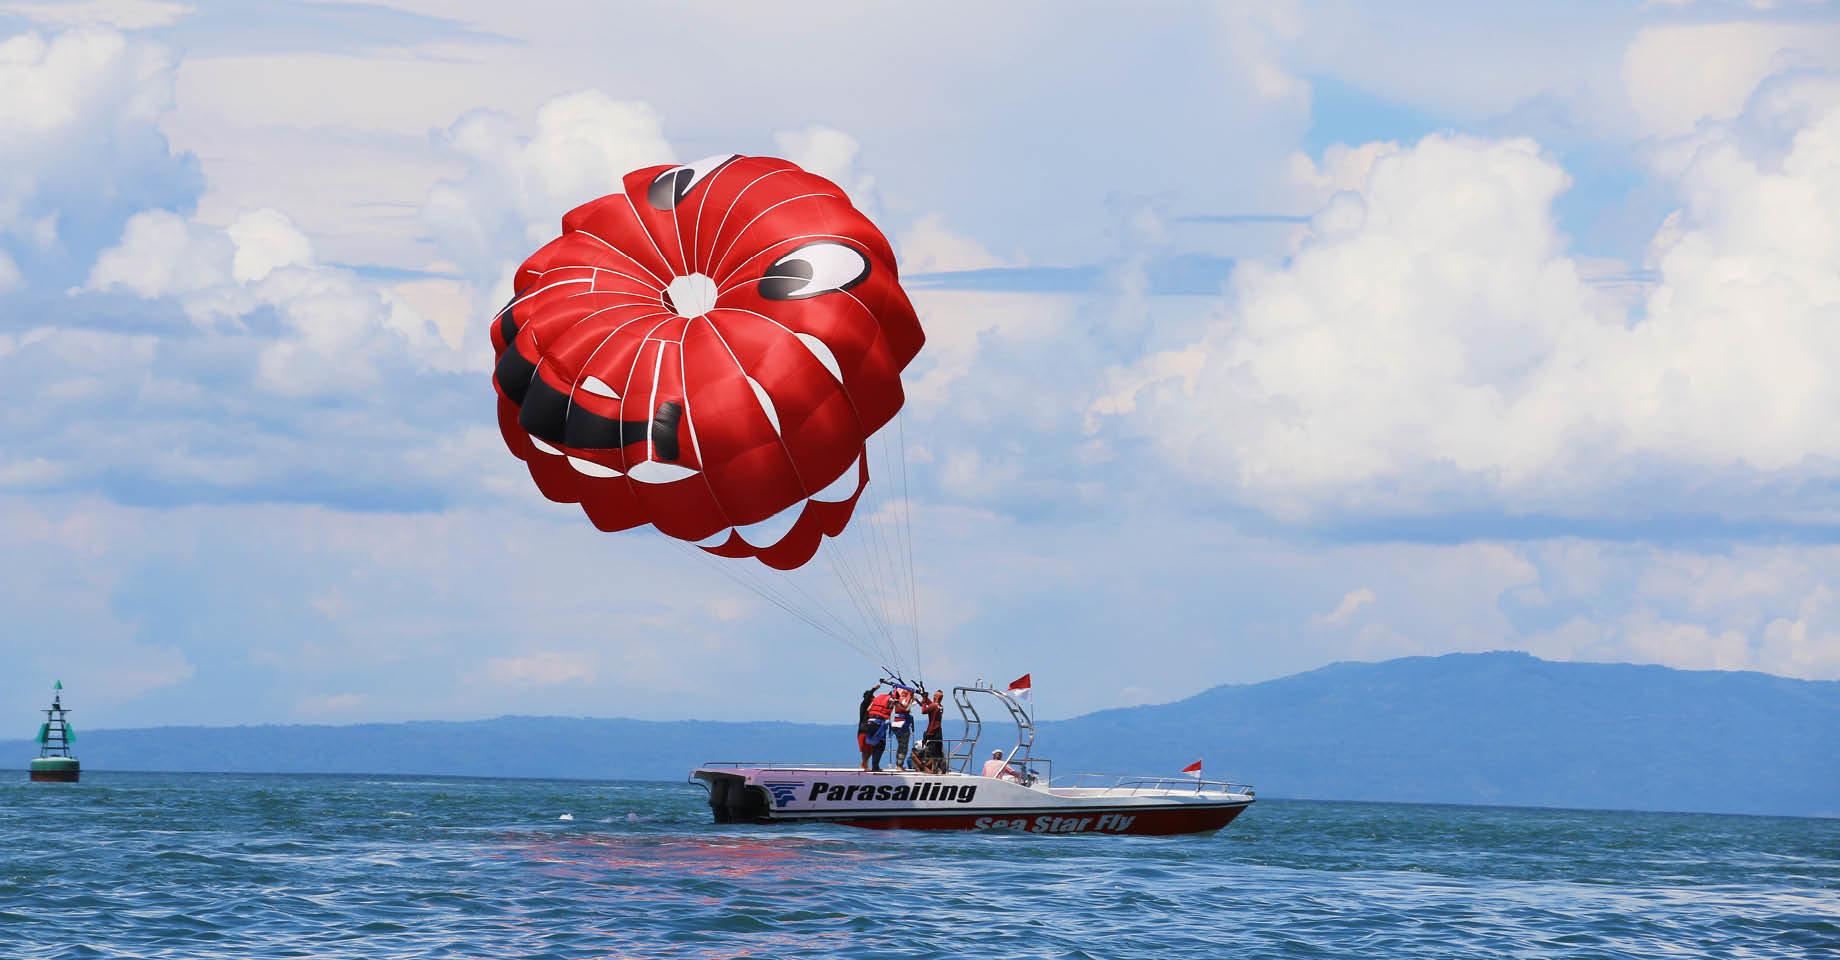 Parasailing, Bali Morteza-F.Shojaei on Unsplash